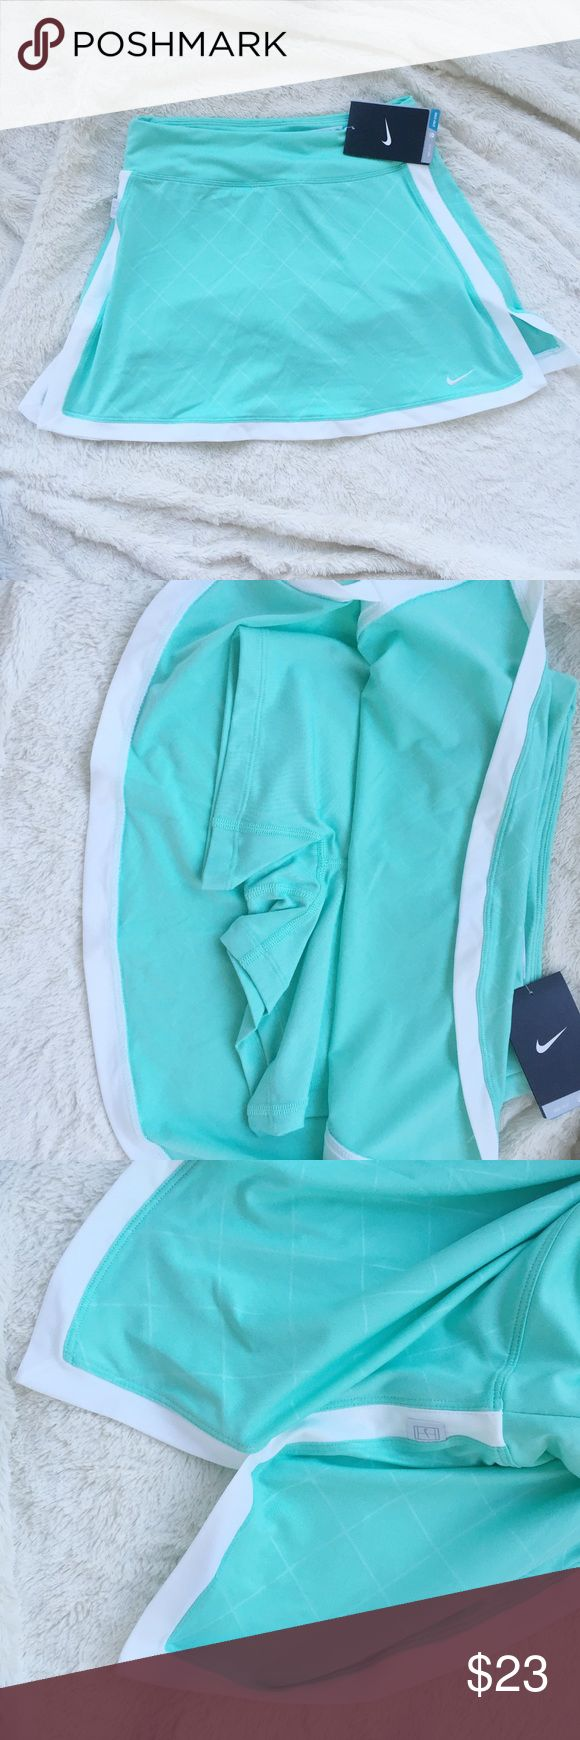 NWT Nike Tennis Skirt - Light Blue - XS Nike Tennis Skirt   - Size XS  - Brand New with Tags  - Color: Light blue and white  - Offers considered Nike Skirts